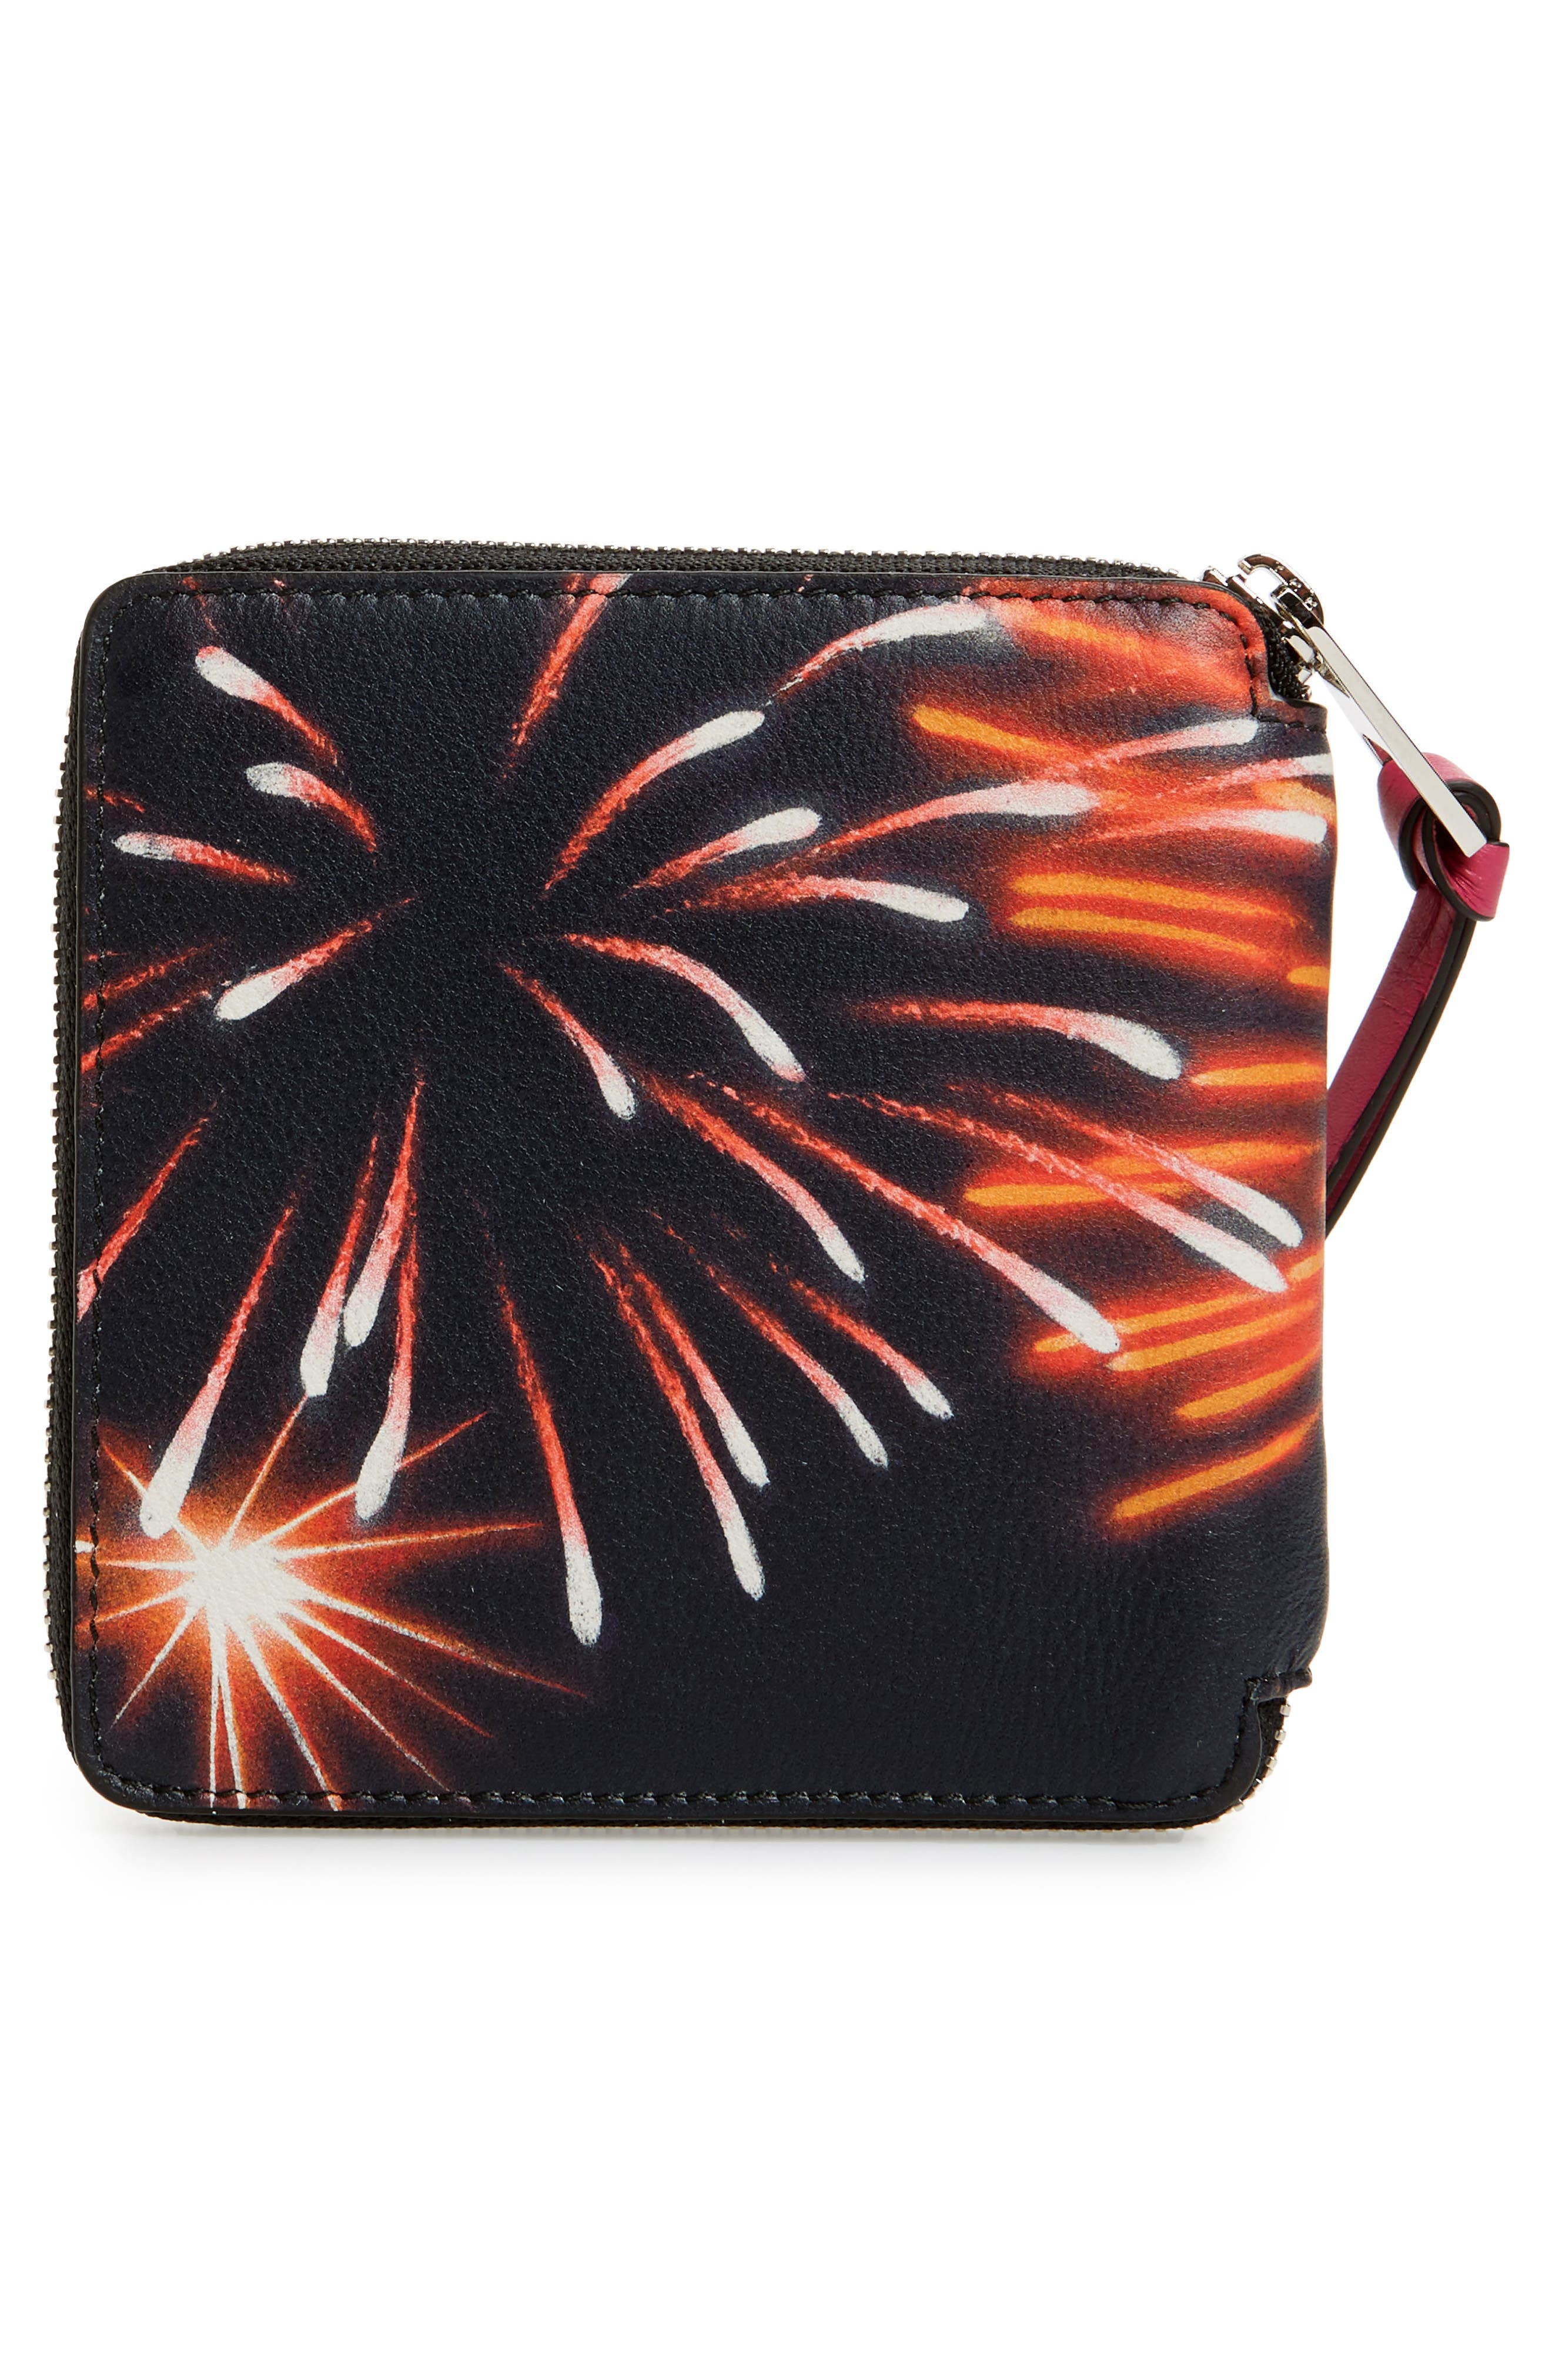 Fireworks Print Calfskin Leather Zip Wallet,                             Alternate thumbnail 3, color,                             White